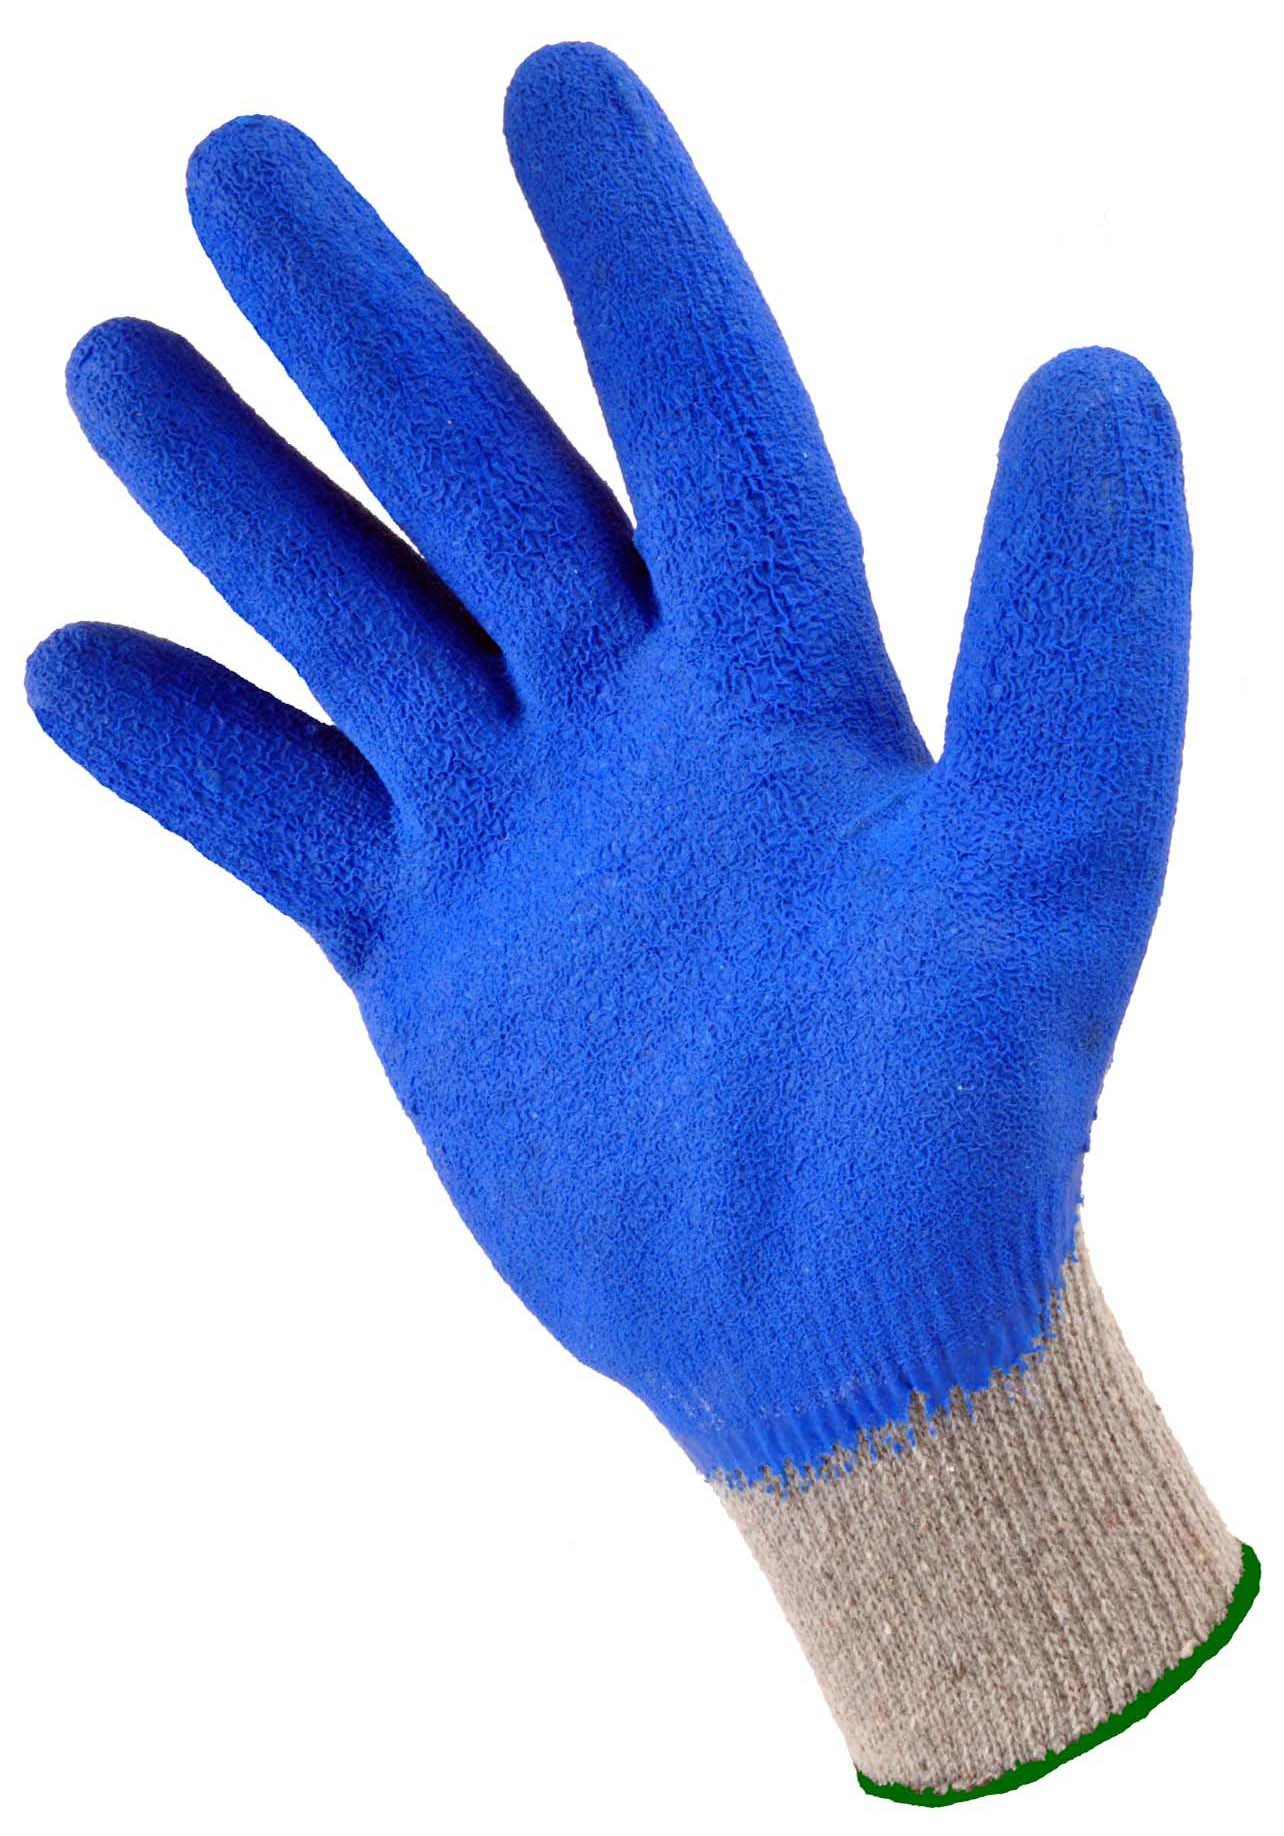 G & F 3100L-10 Rubber Latex Coated Work Gloves for Construction, Blue, Crinkle Pattern, Men's Large (120 Pairs) by G & F Products